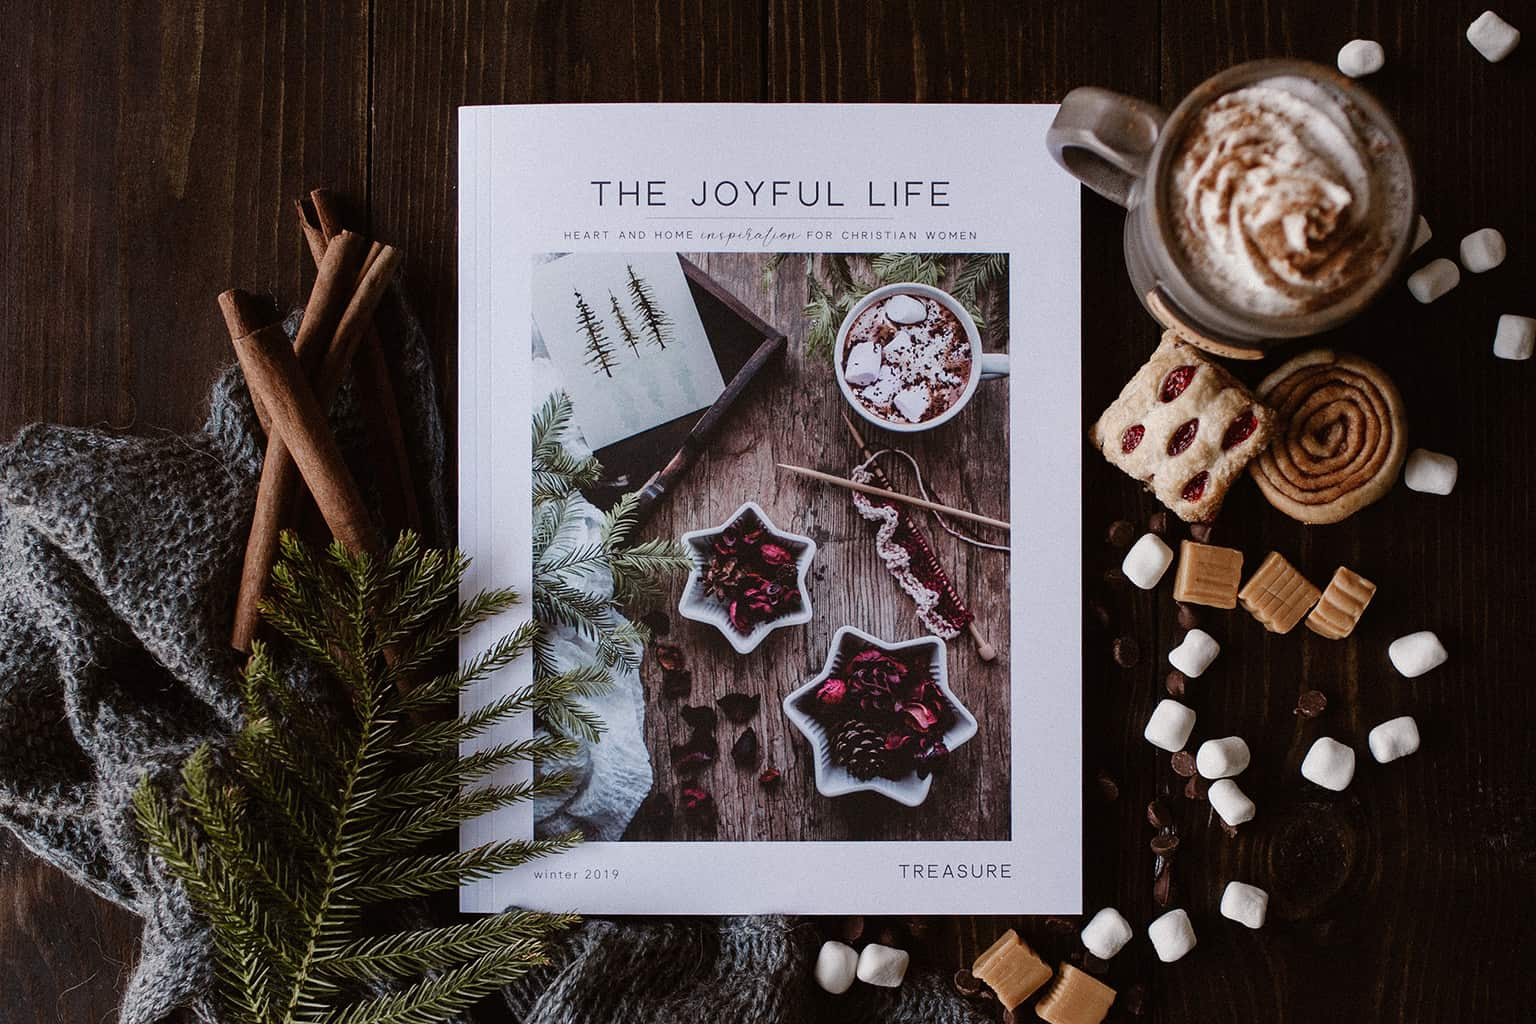 Joyful Life Magazine Treasure Issue